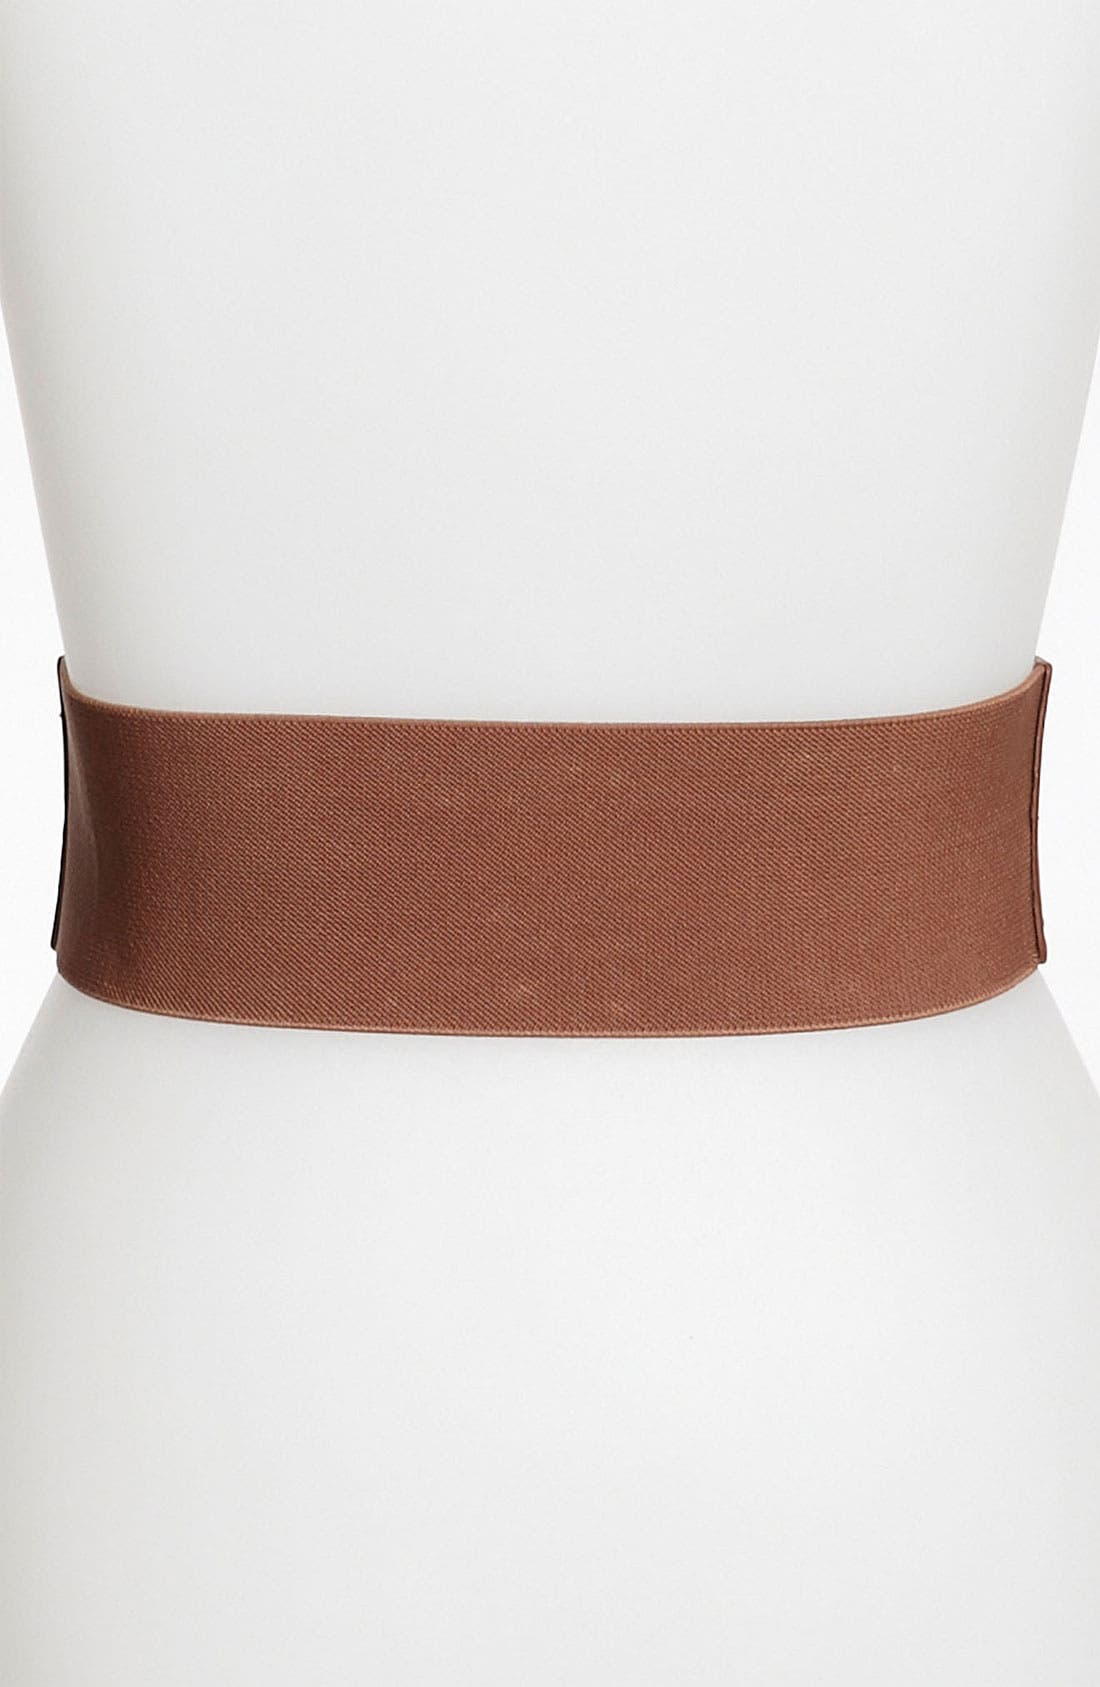 Alternate Image 2  - Steven by Steve Madden Studded Stretch Belt